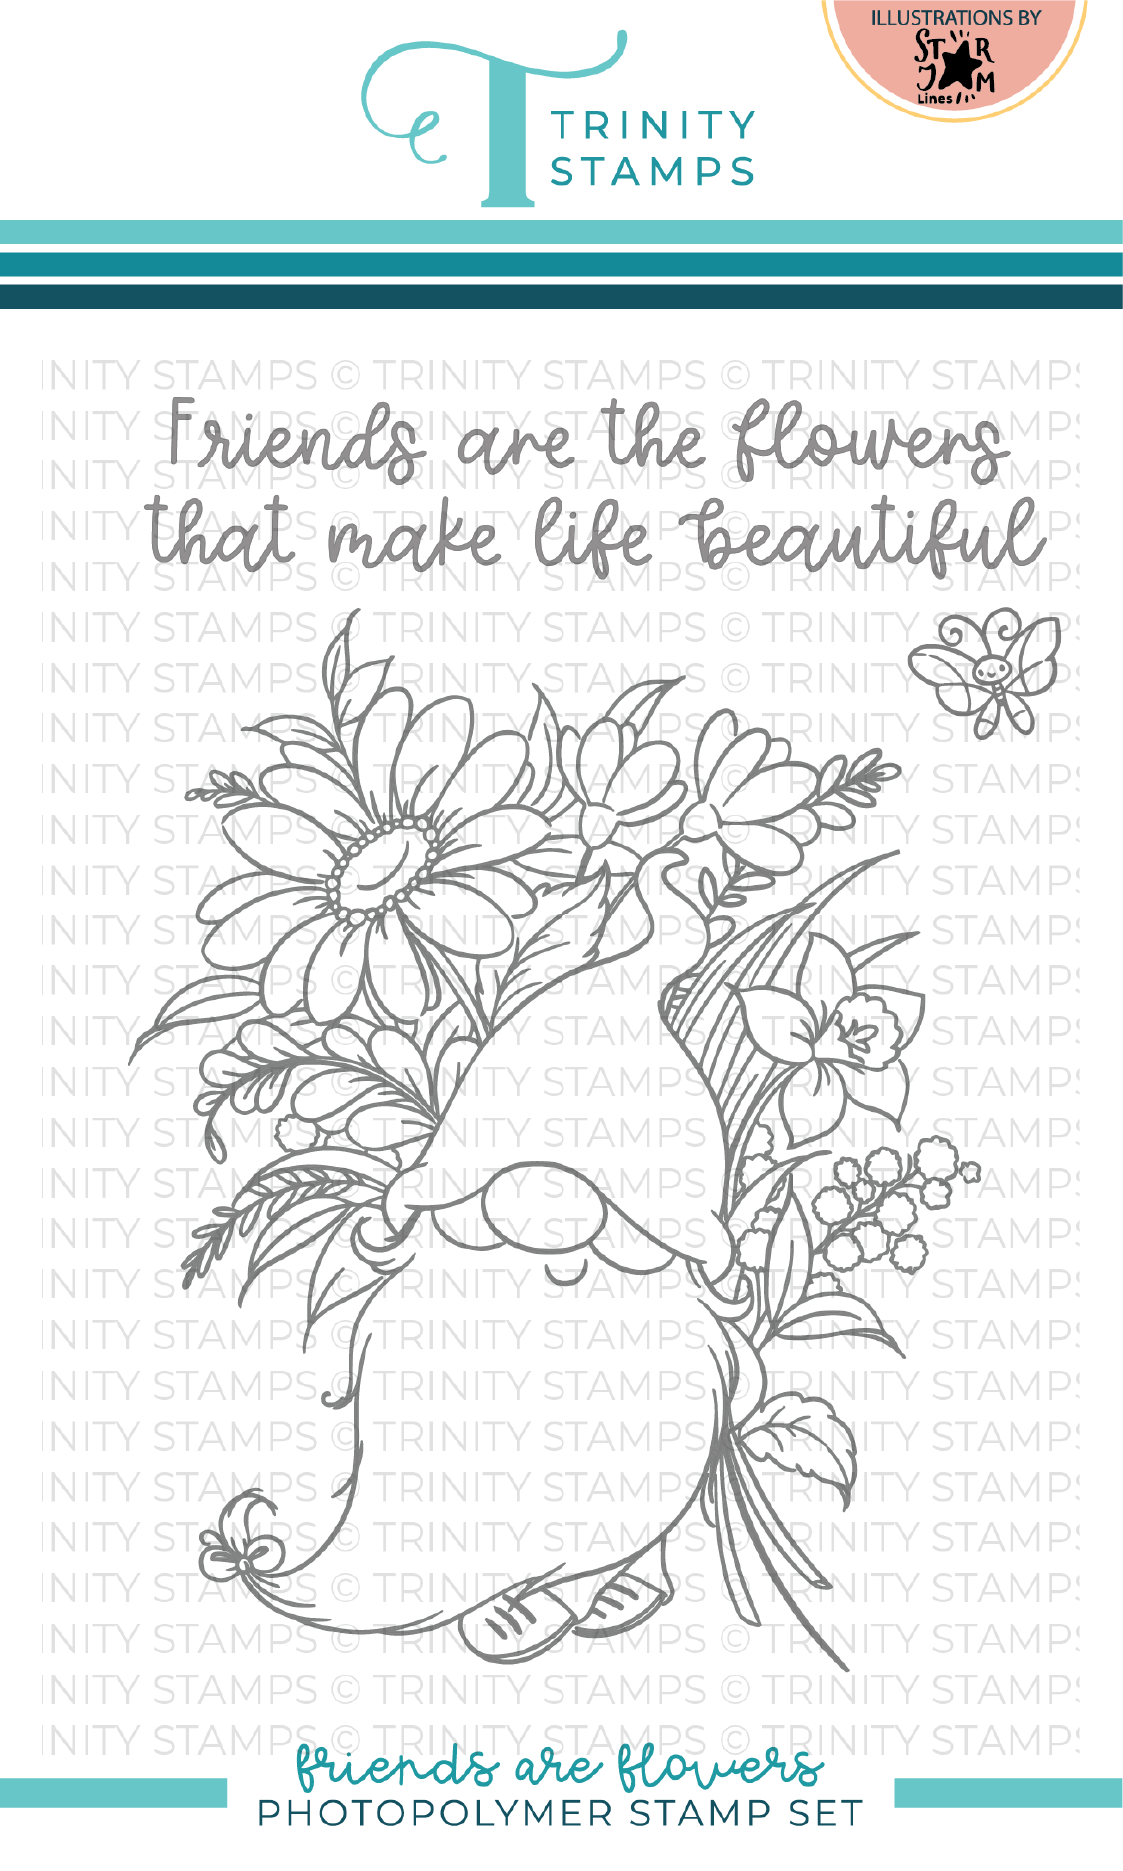 *NEW* - Trinity Stamps - Friends are Flowers 4x6 Stamp Set